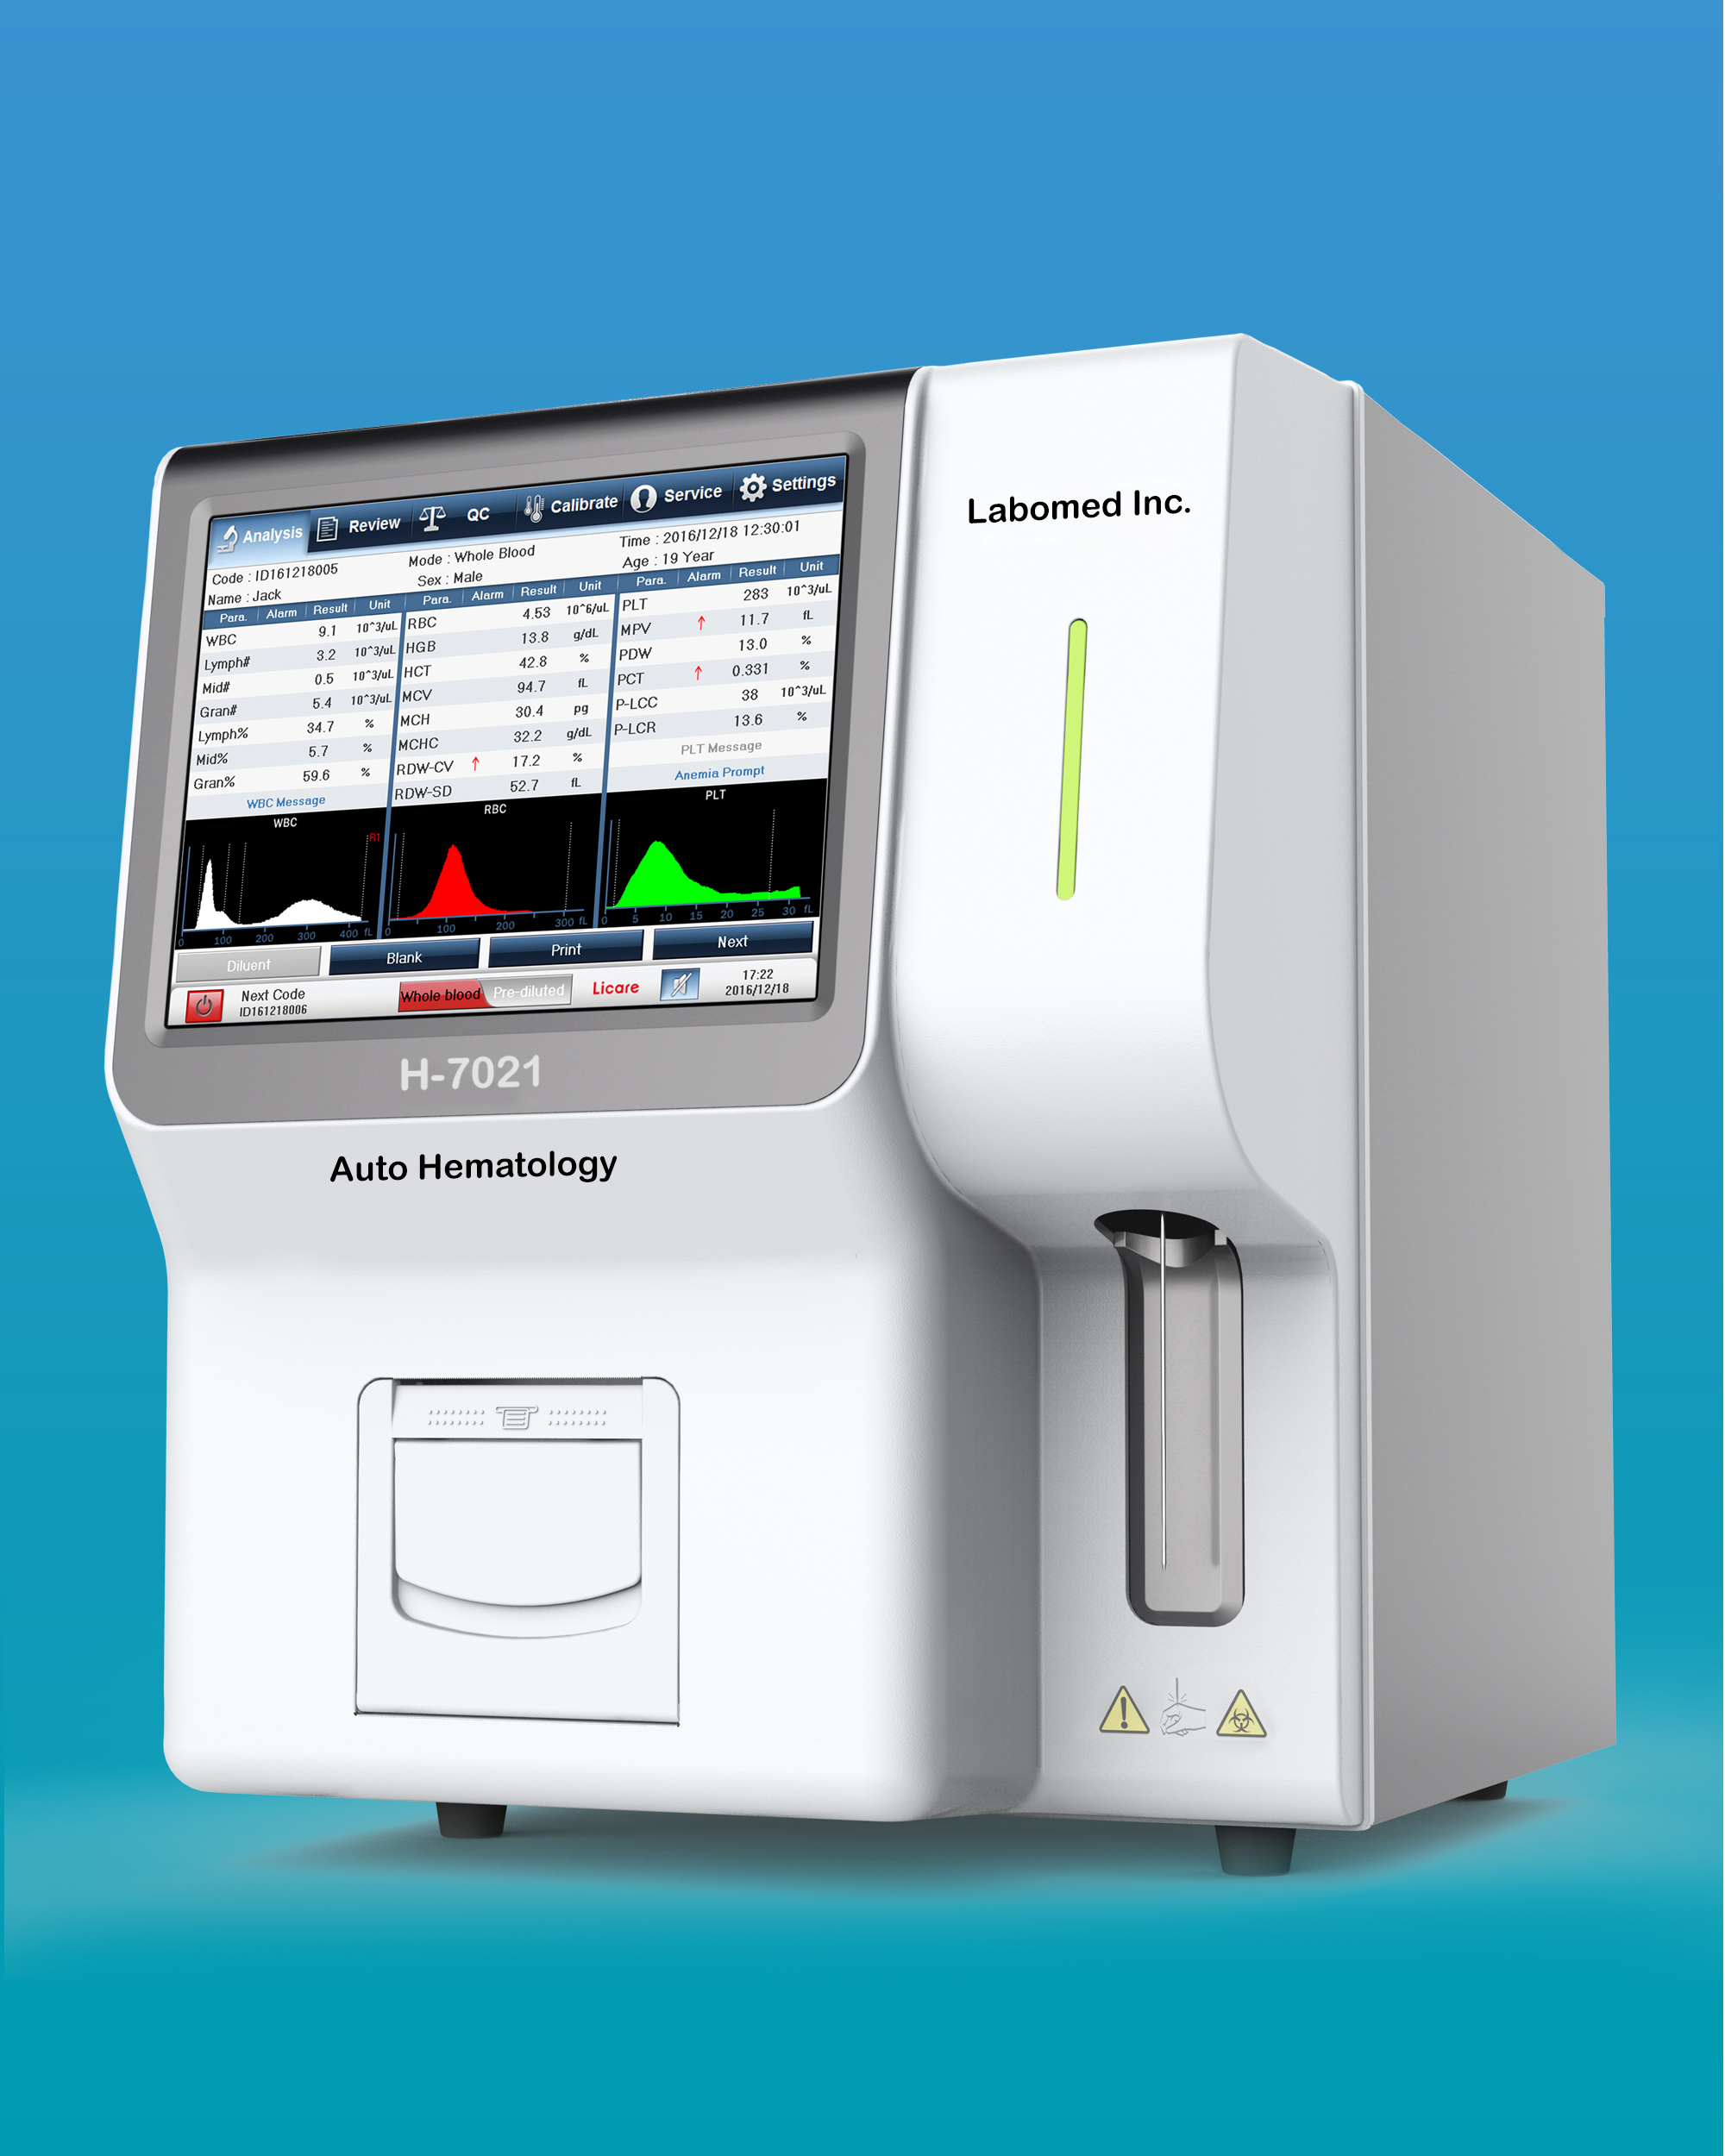 [H-7021] Fully Automatic Hematology Analyzer (21 Parameter)